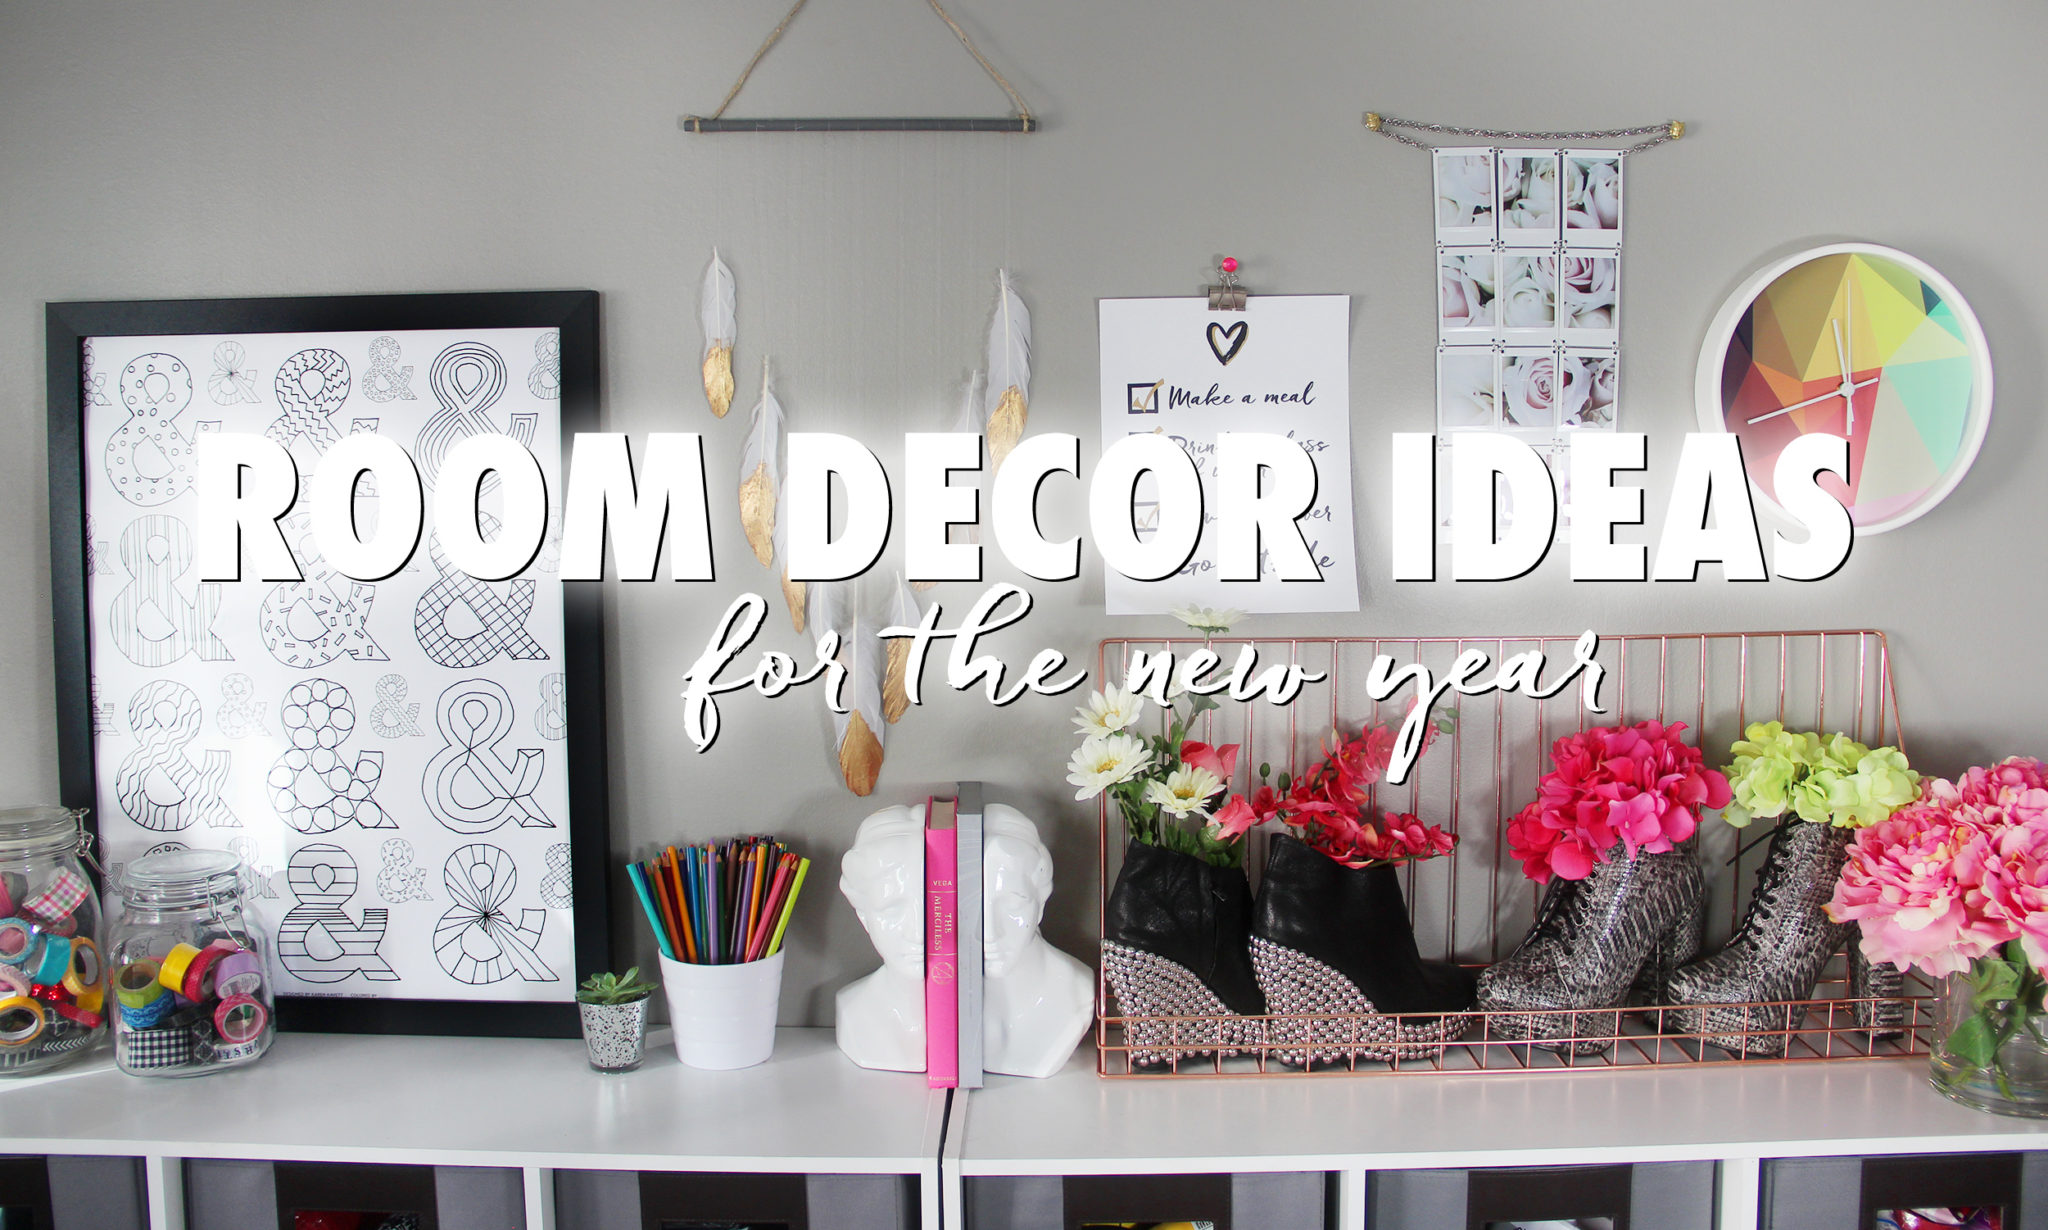 3 room decor ideas for 2016 free printable motivational poster karen kavett Diy home design ideas living room software